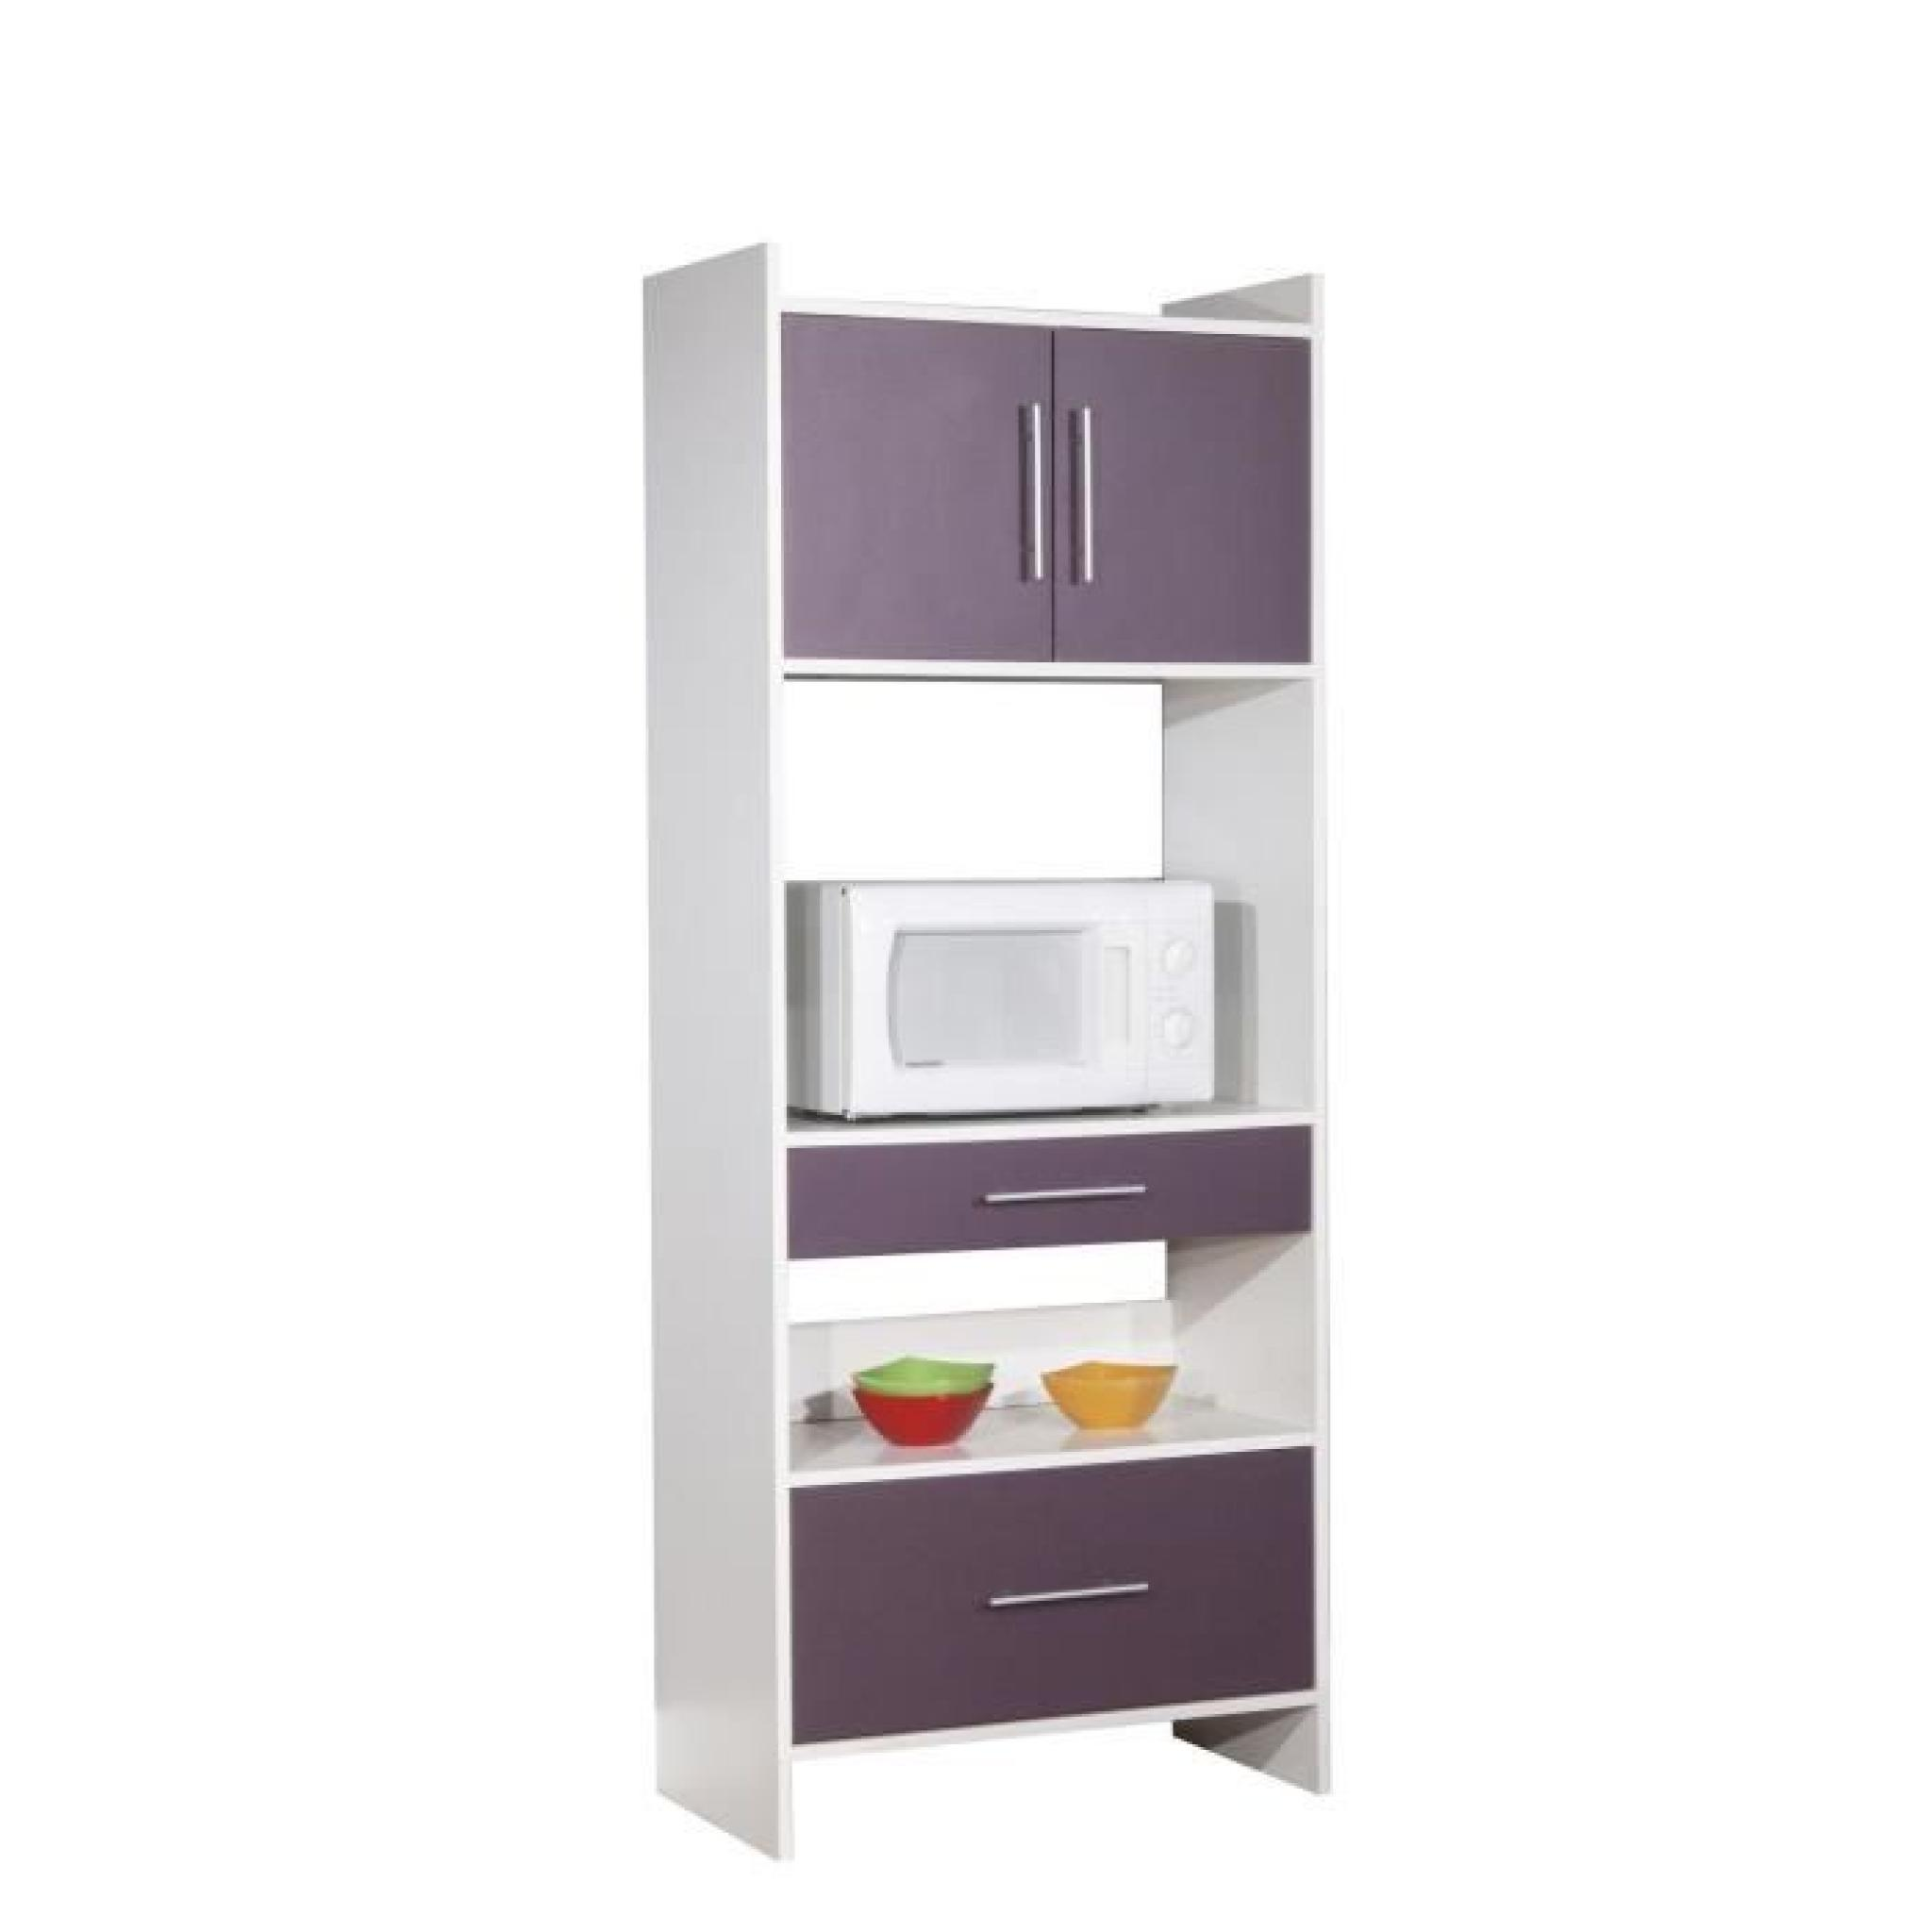 peps buffet de cuisine 70cm aubergine et blanc achat vente buffet de cuisine pas cher. Black Bedroom Furniture Sets. Home Design Ideas